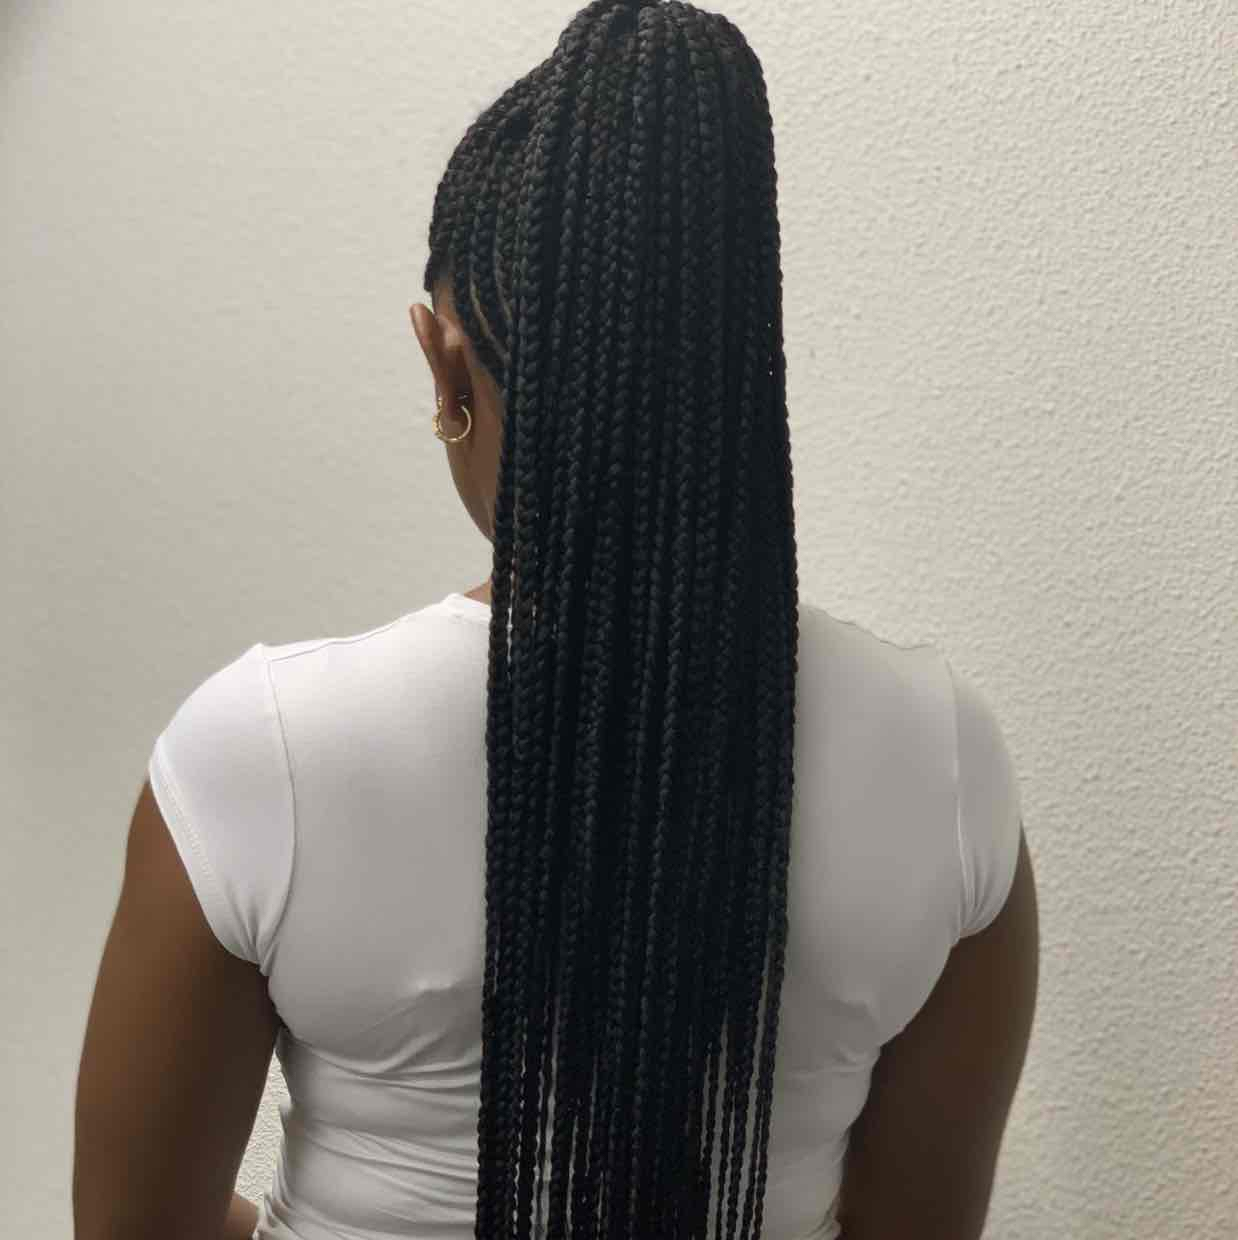 salon de coiffure afro tresse tresses box braids crochet braids vanilles tissages paris 75 77 78 91 92 93 94 95 SPXIUSTH